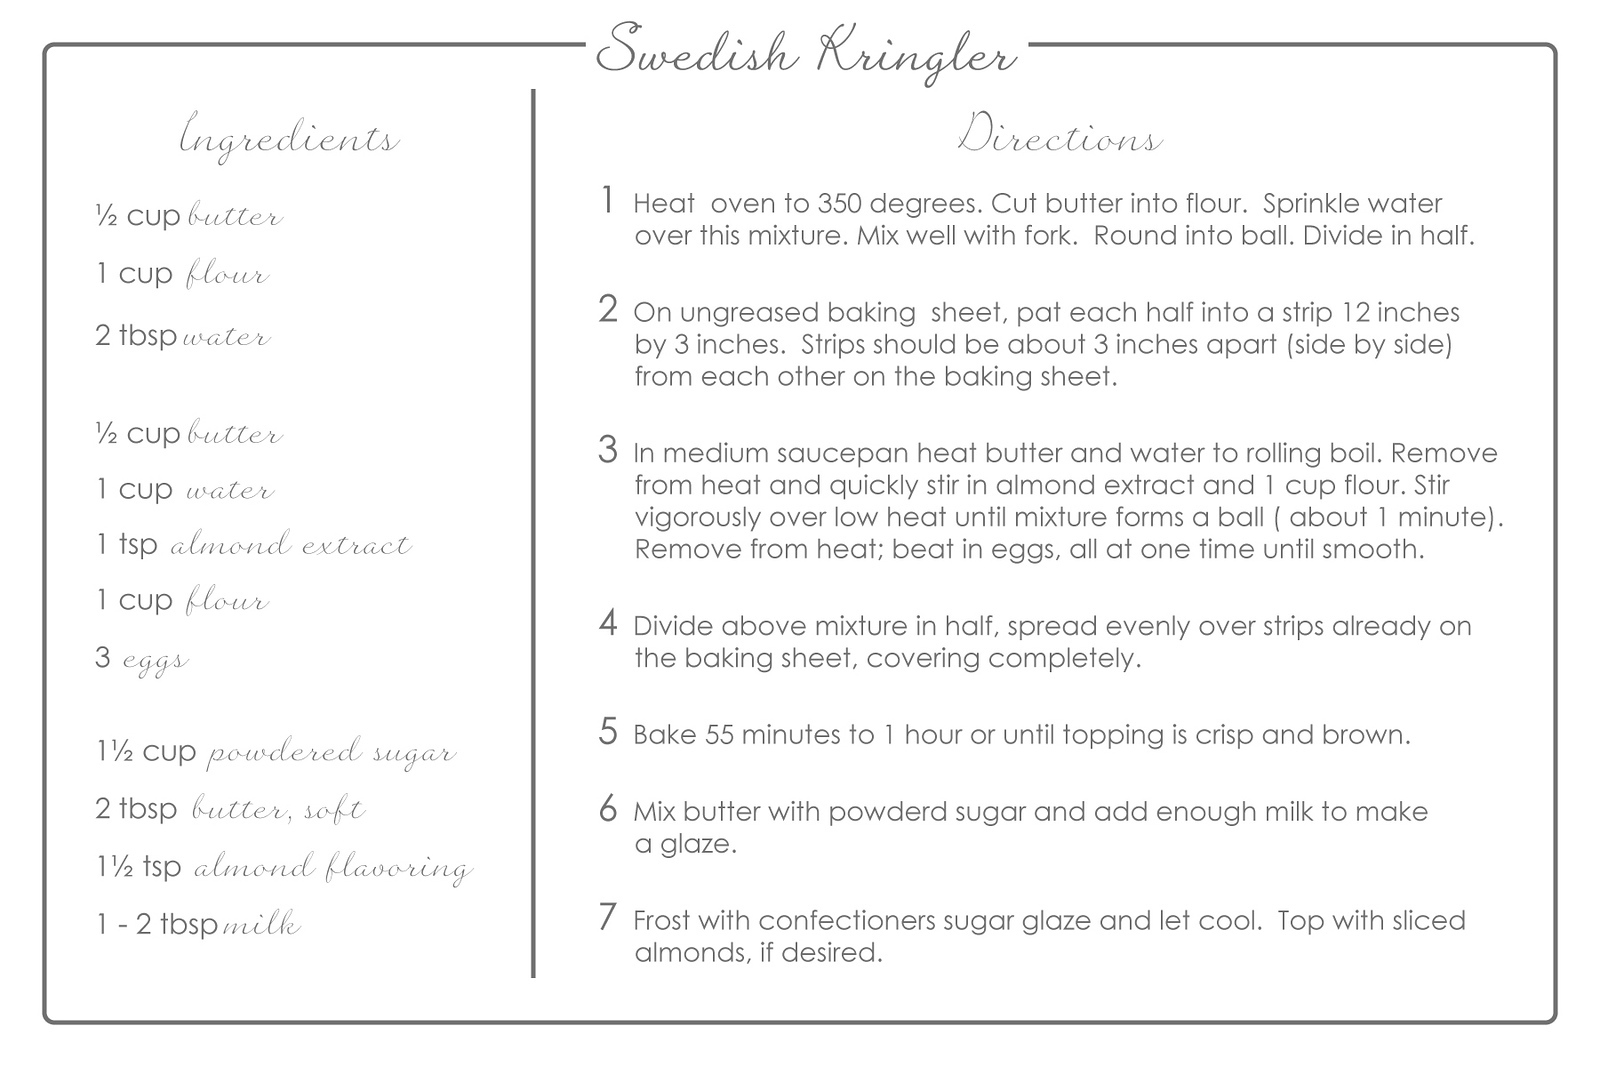 Swedish Kringler Recipe